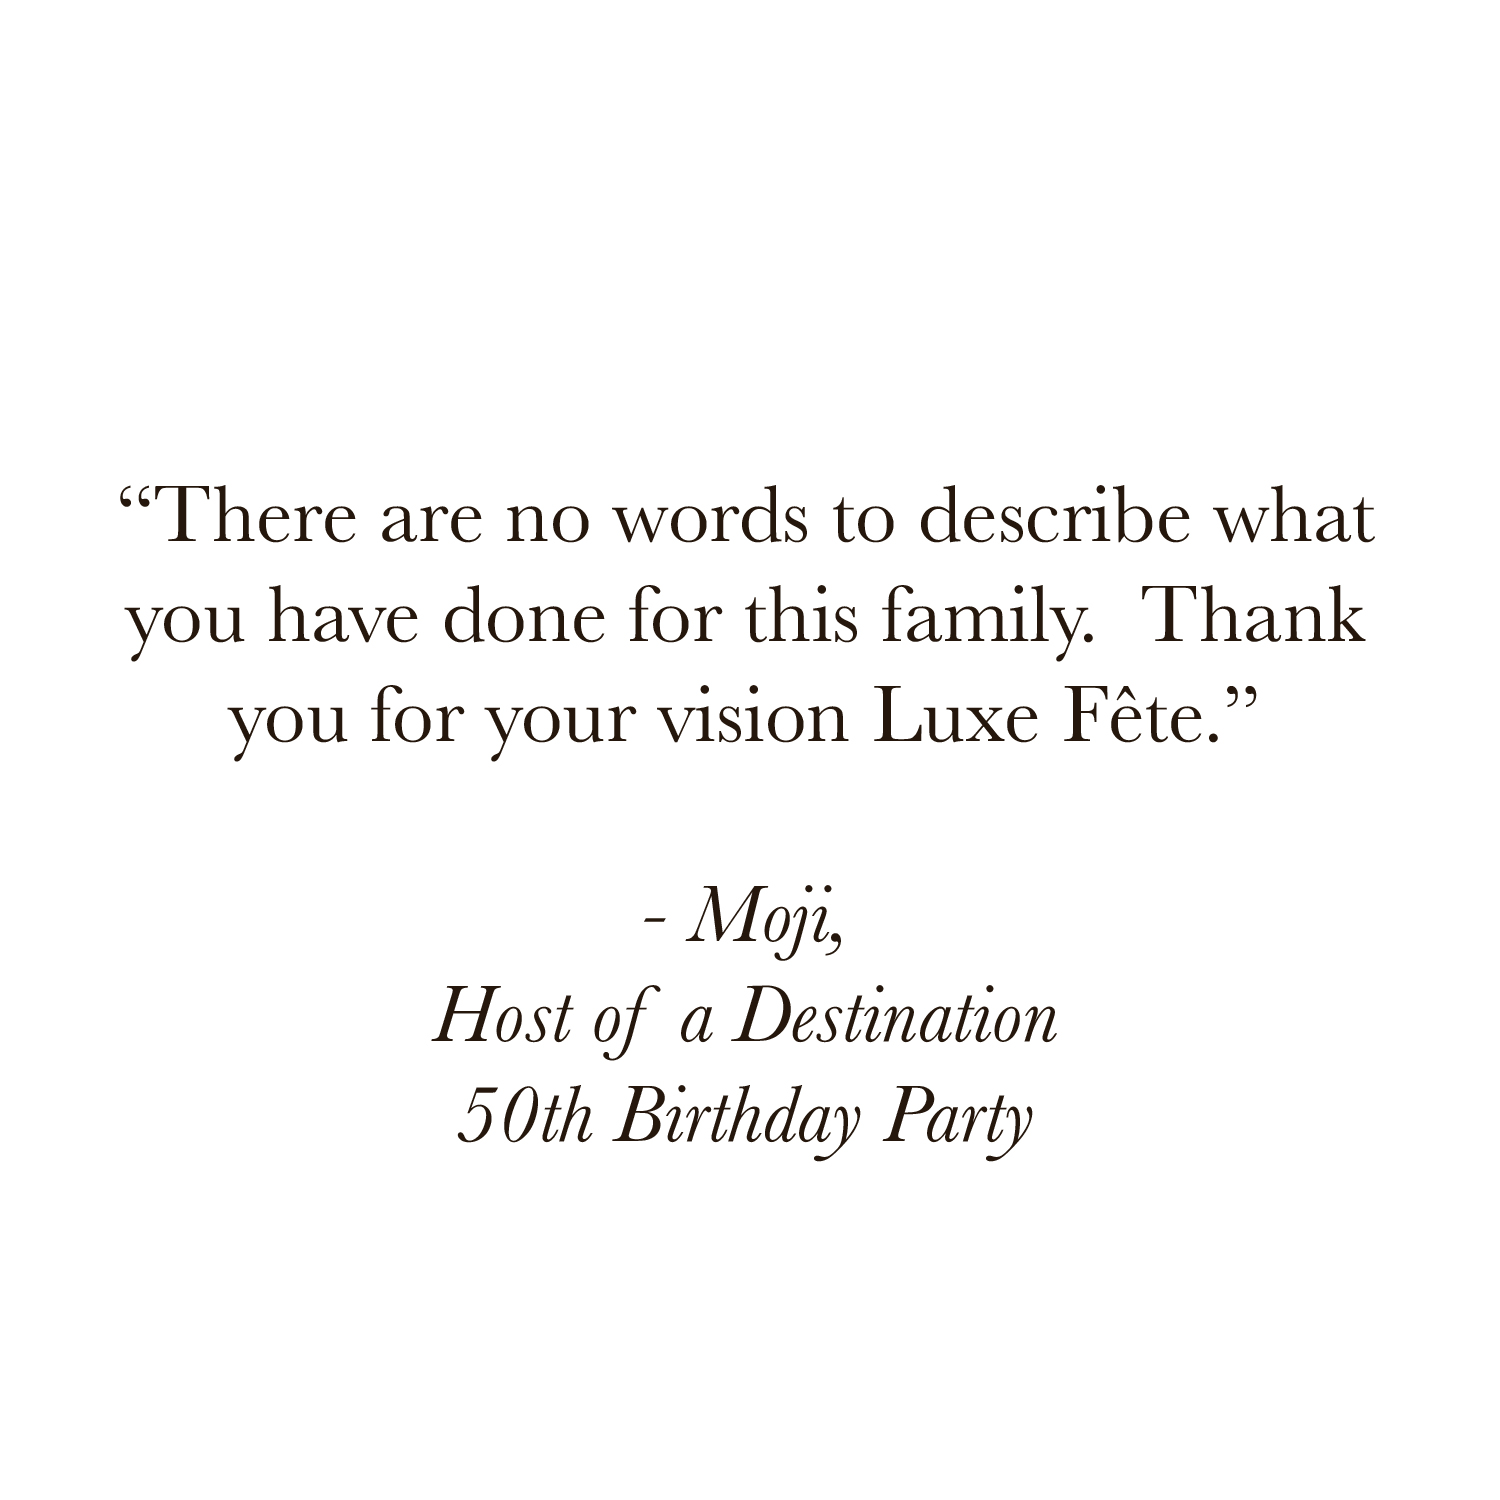 Luxe Fete Client Miami Event Planner 50th Birthday Party